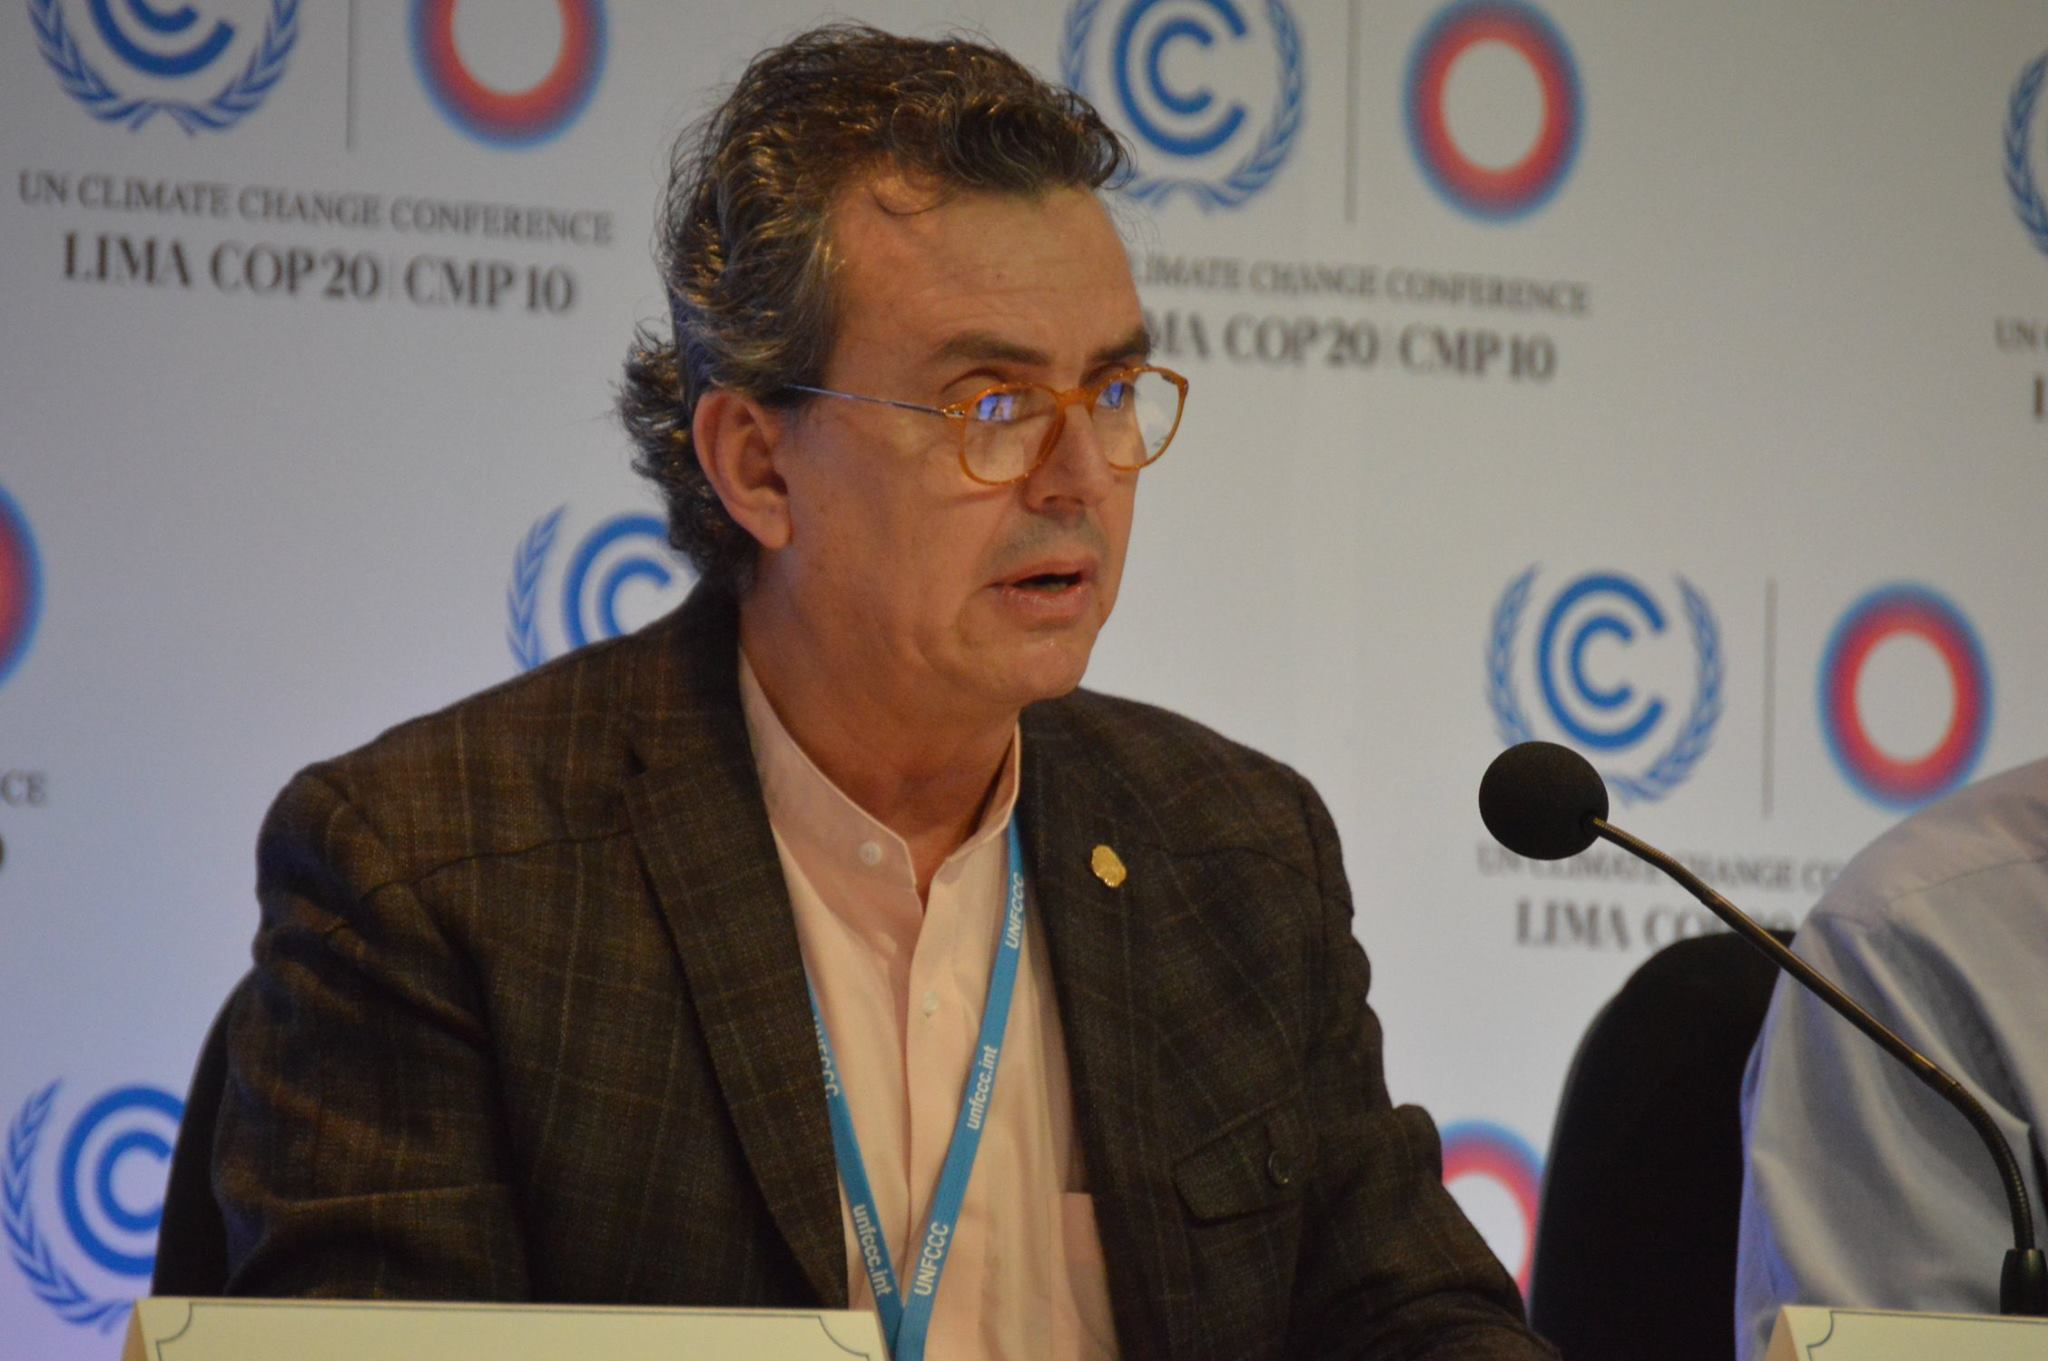 Costa Rica Minister at CVF Press Conference at COP20 - Source: AILAC - copyright 2014 all rights reserved